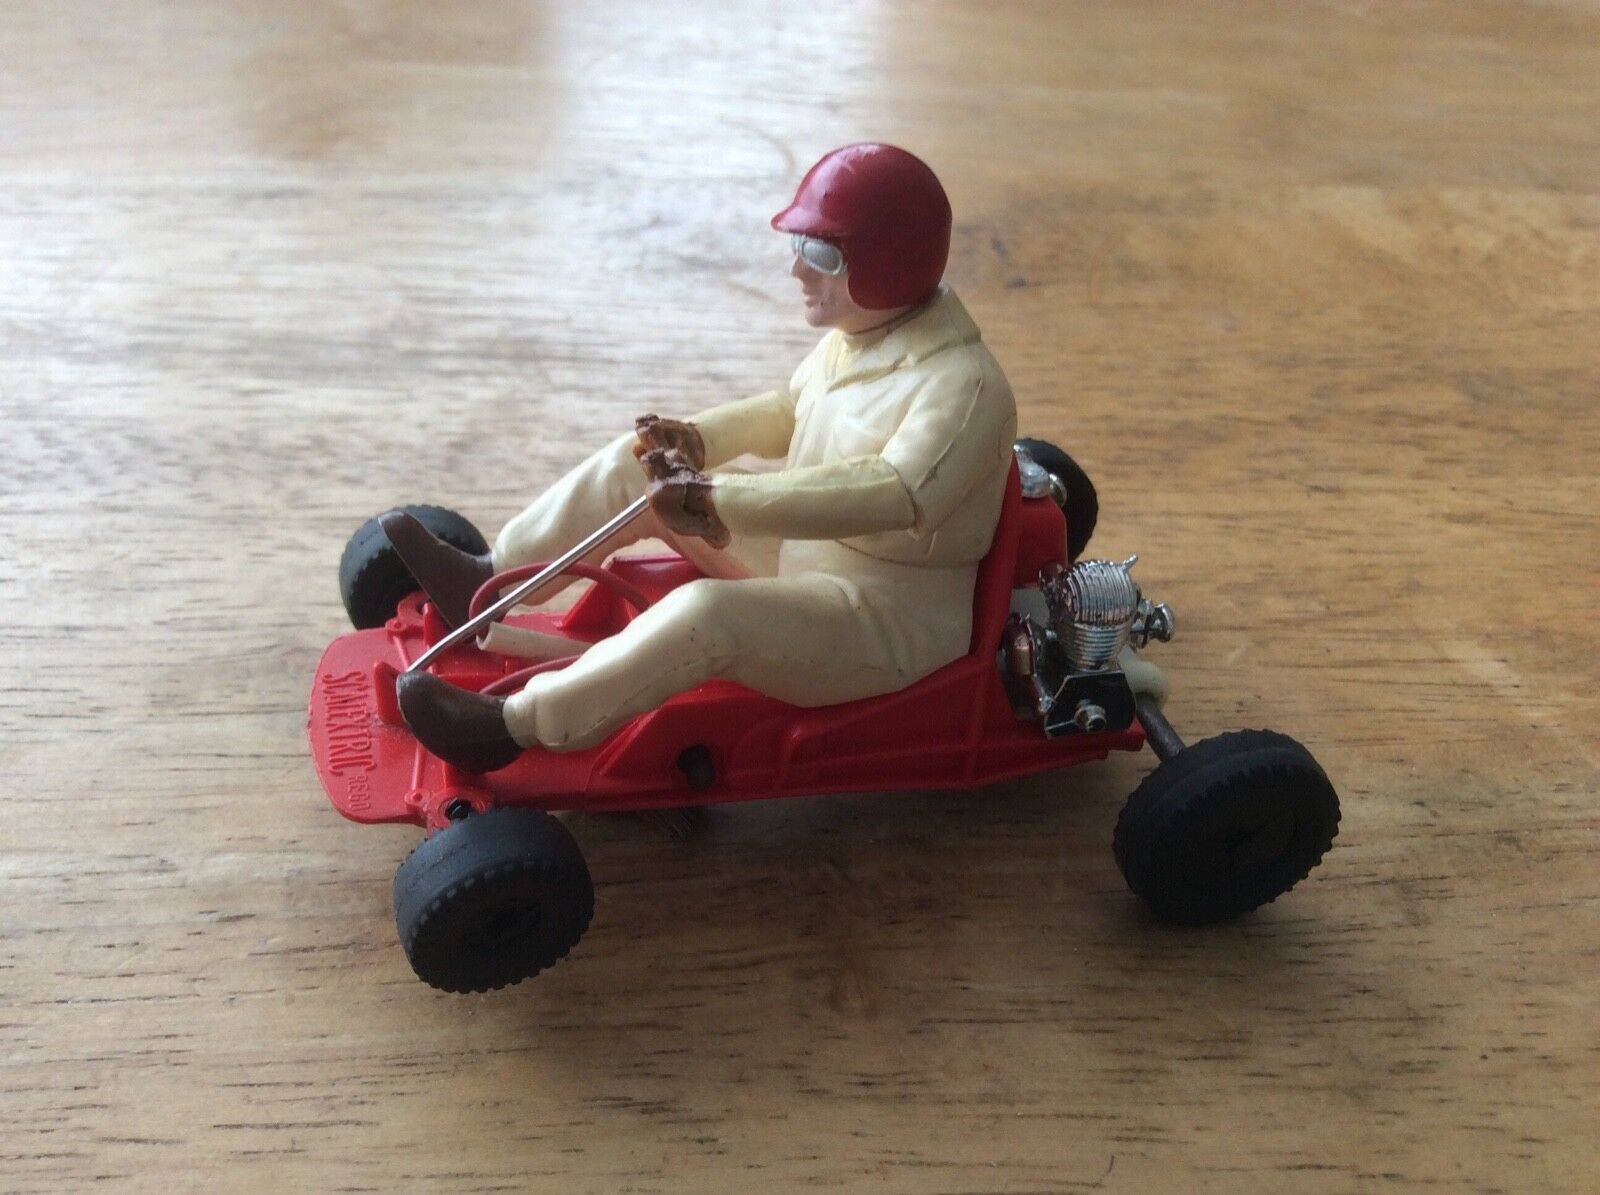 Scalextric Tri-ang Vintage 1960's K1 GO - KART in red unboxed